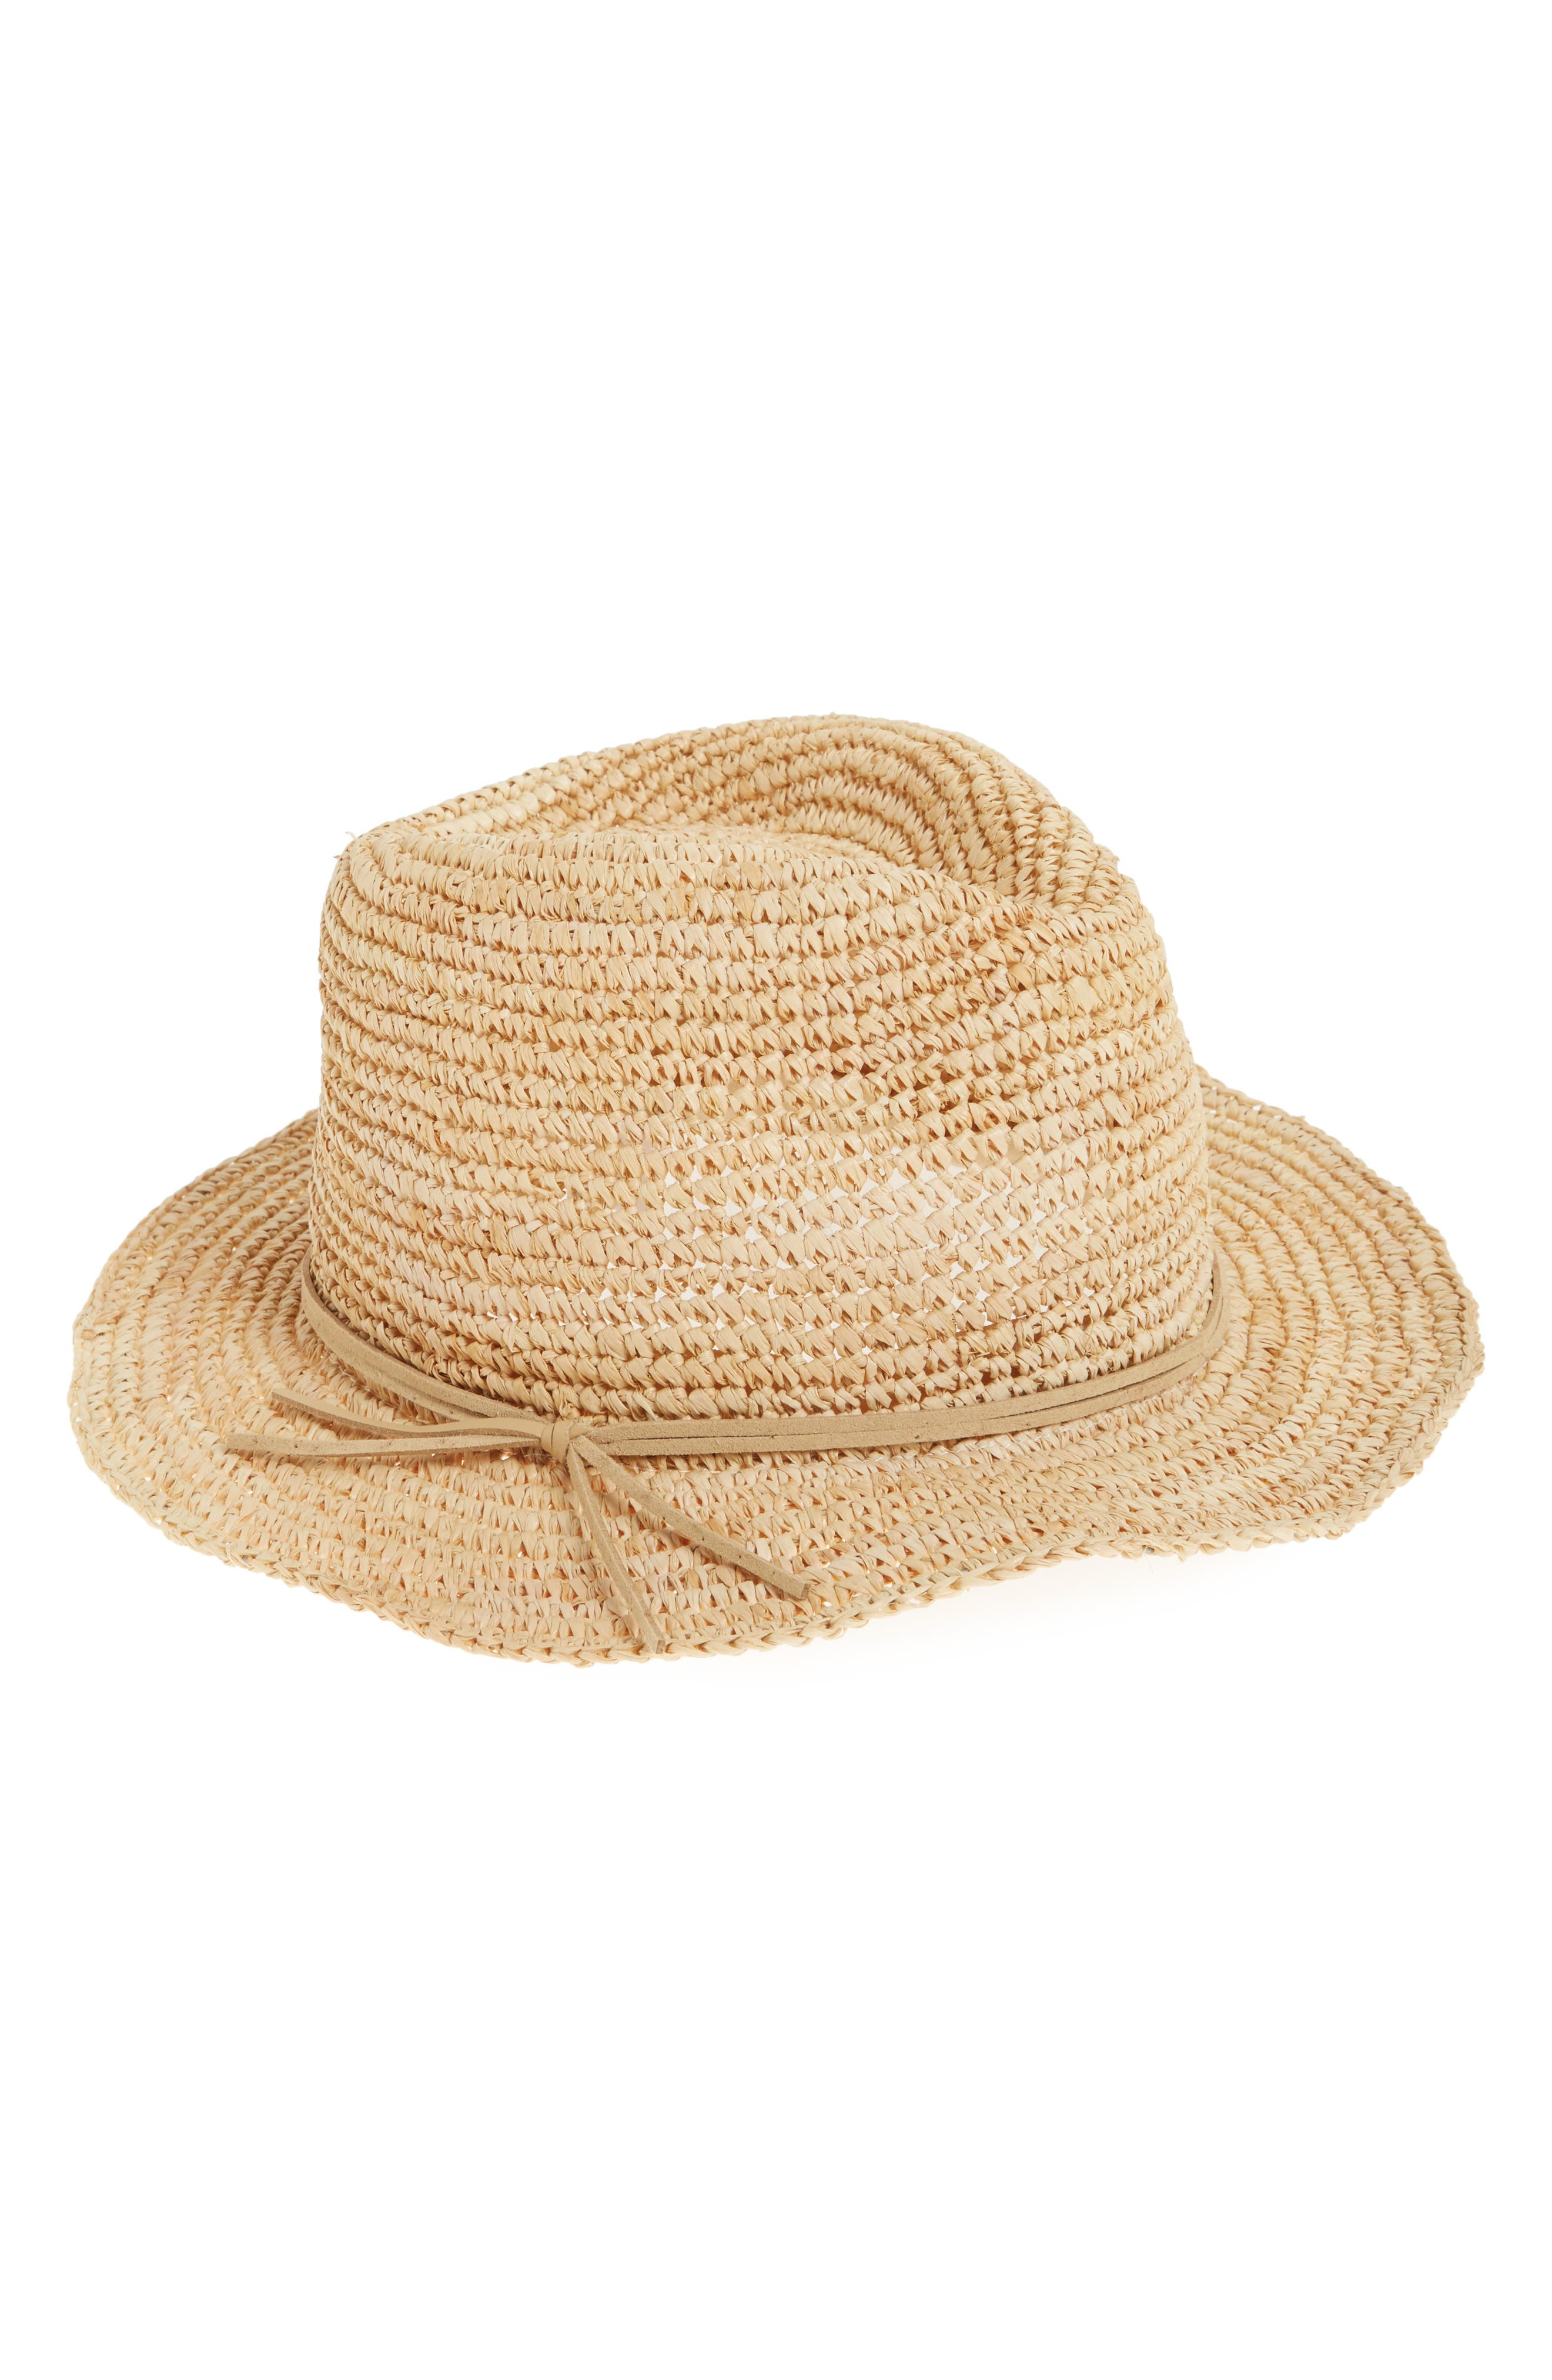 Caslon Raffia Panama Hat,                             Main thumbnail 1, color,                             Natural Combo